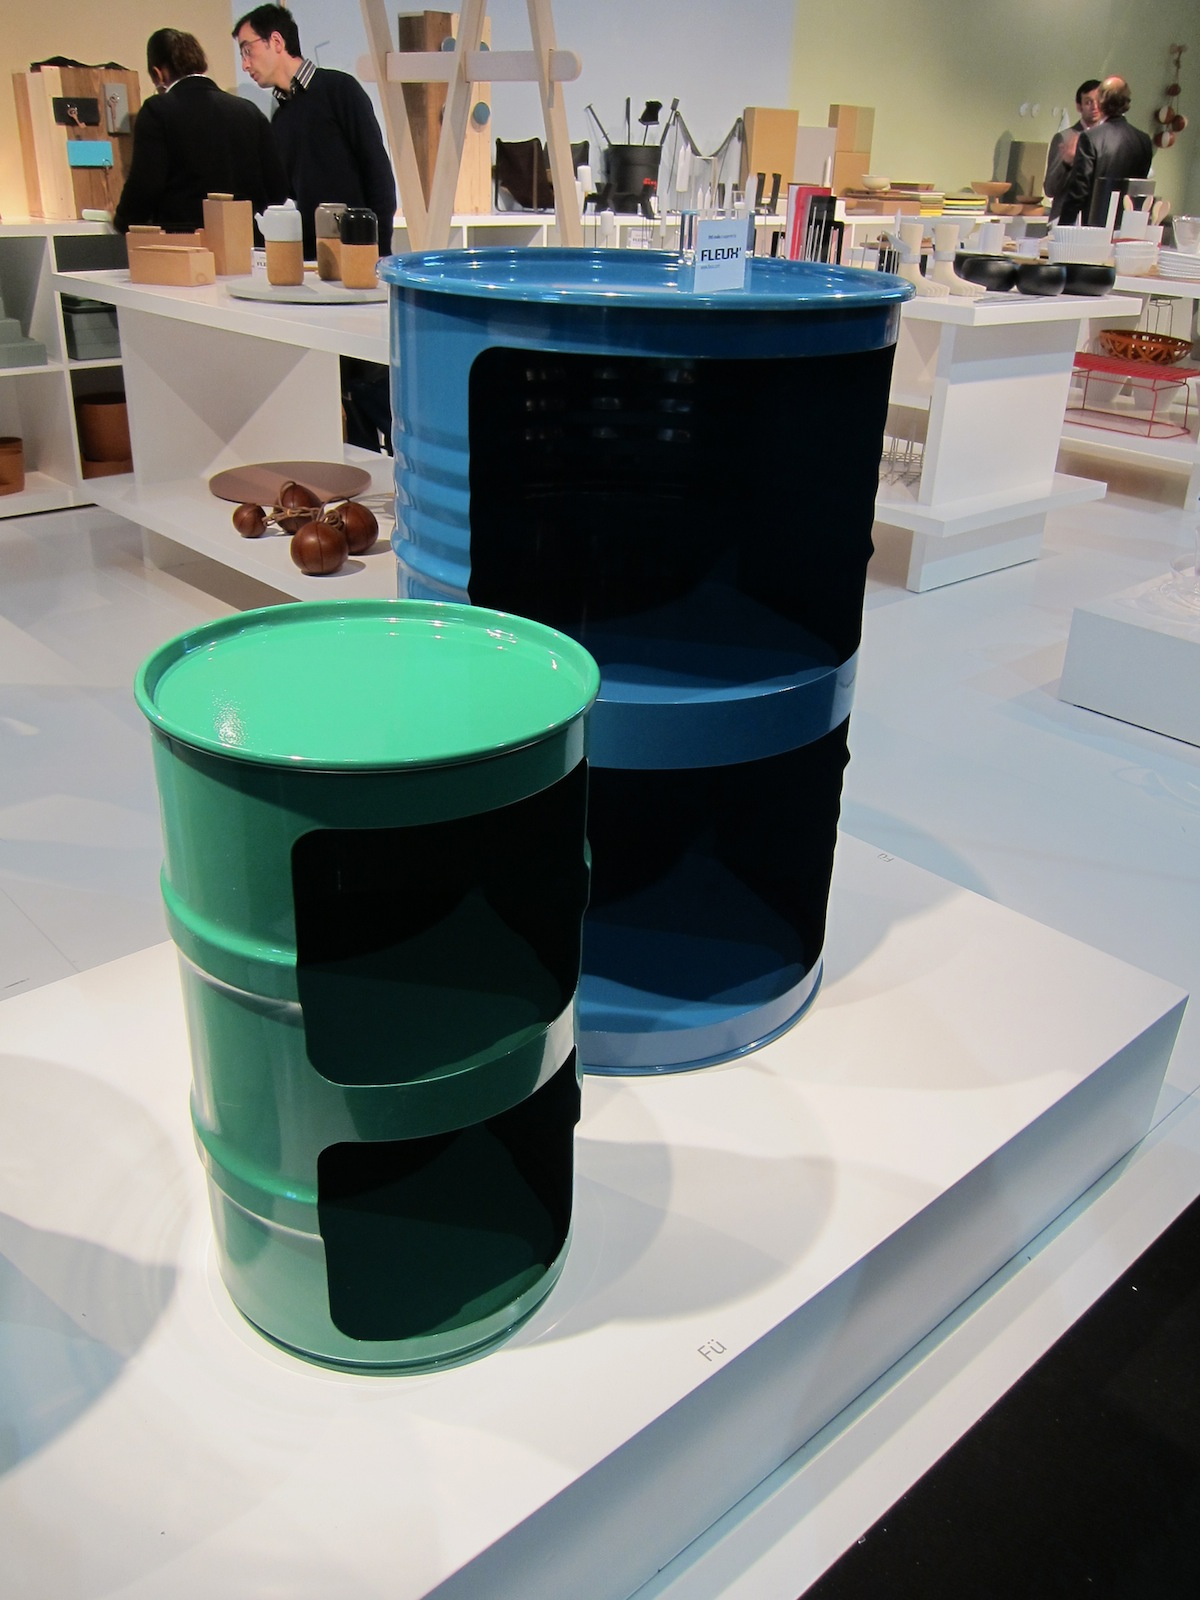 One of my favorite discoveries was the four-year-old company Eno Studio, which commissions projects from emerging and established designers, many of them French. Here's one of the products they premiered at the fair: storage made from recycled oil drums p